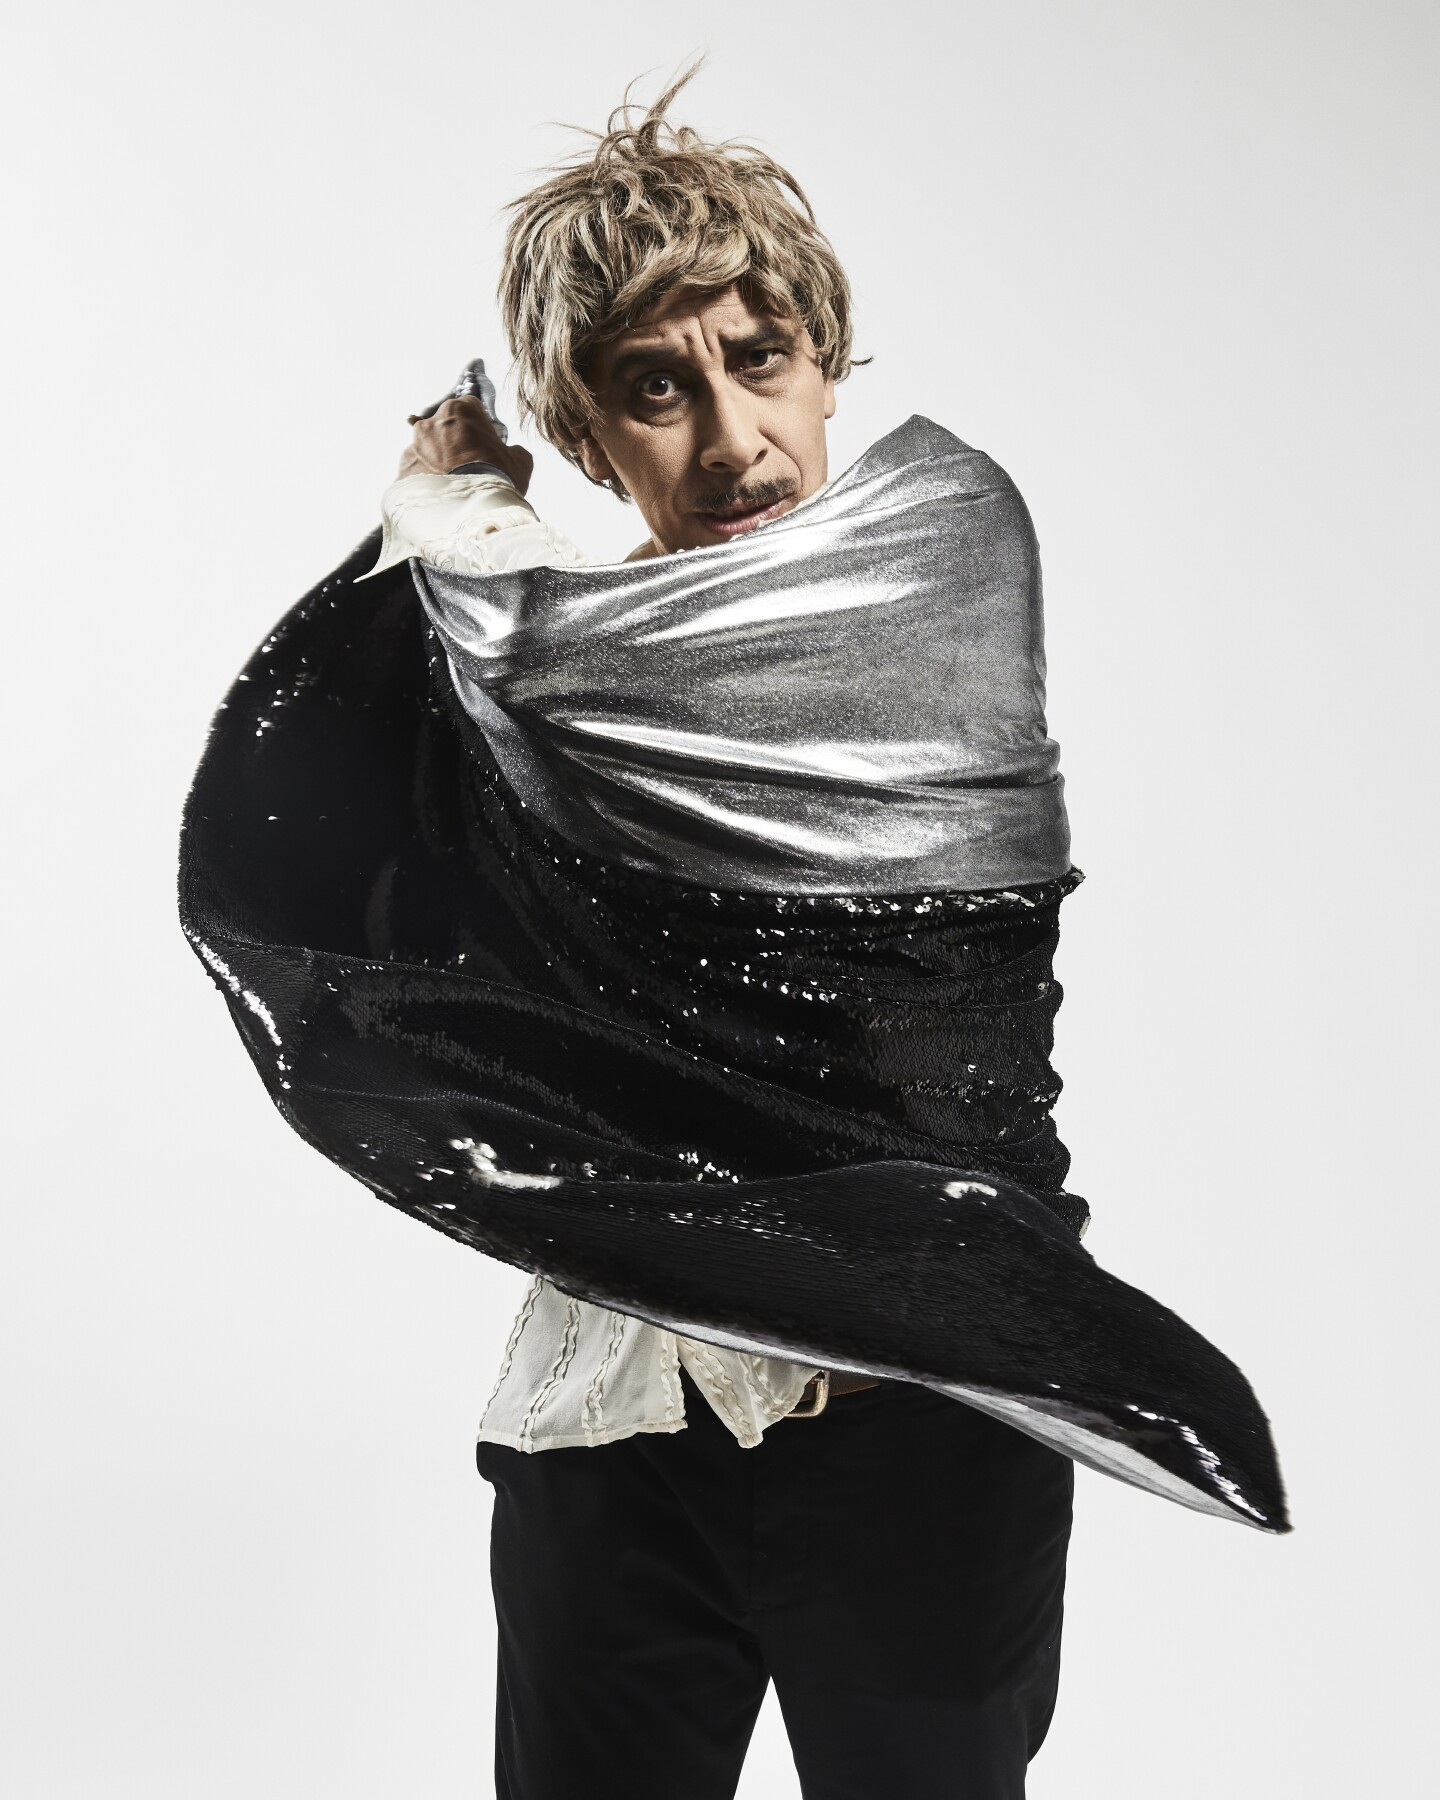 Kid Congo Powers wrapped in a glittery silver cape